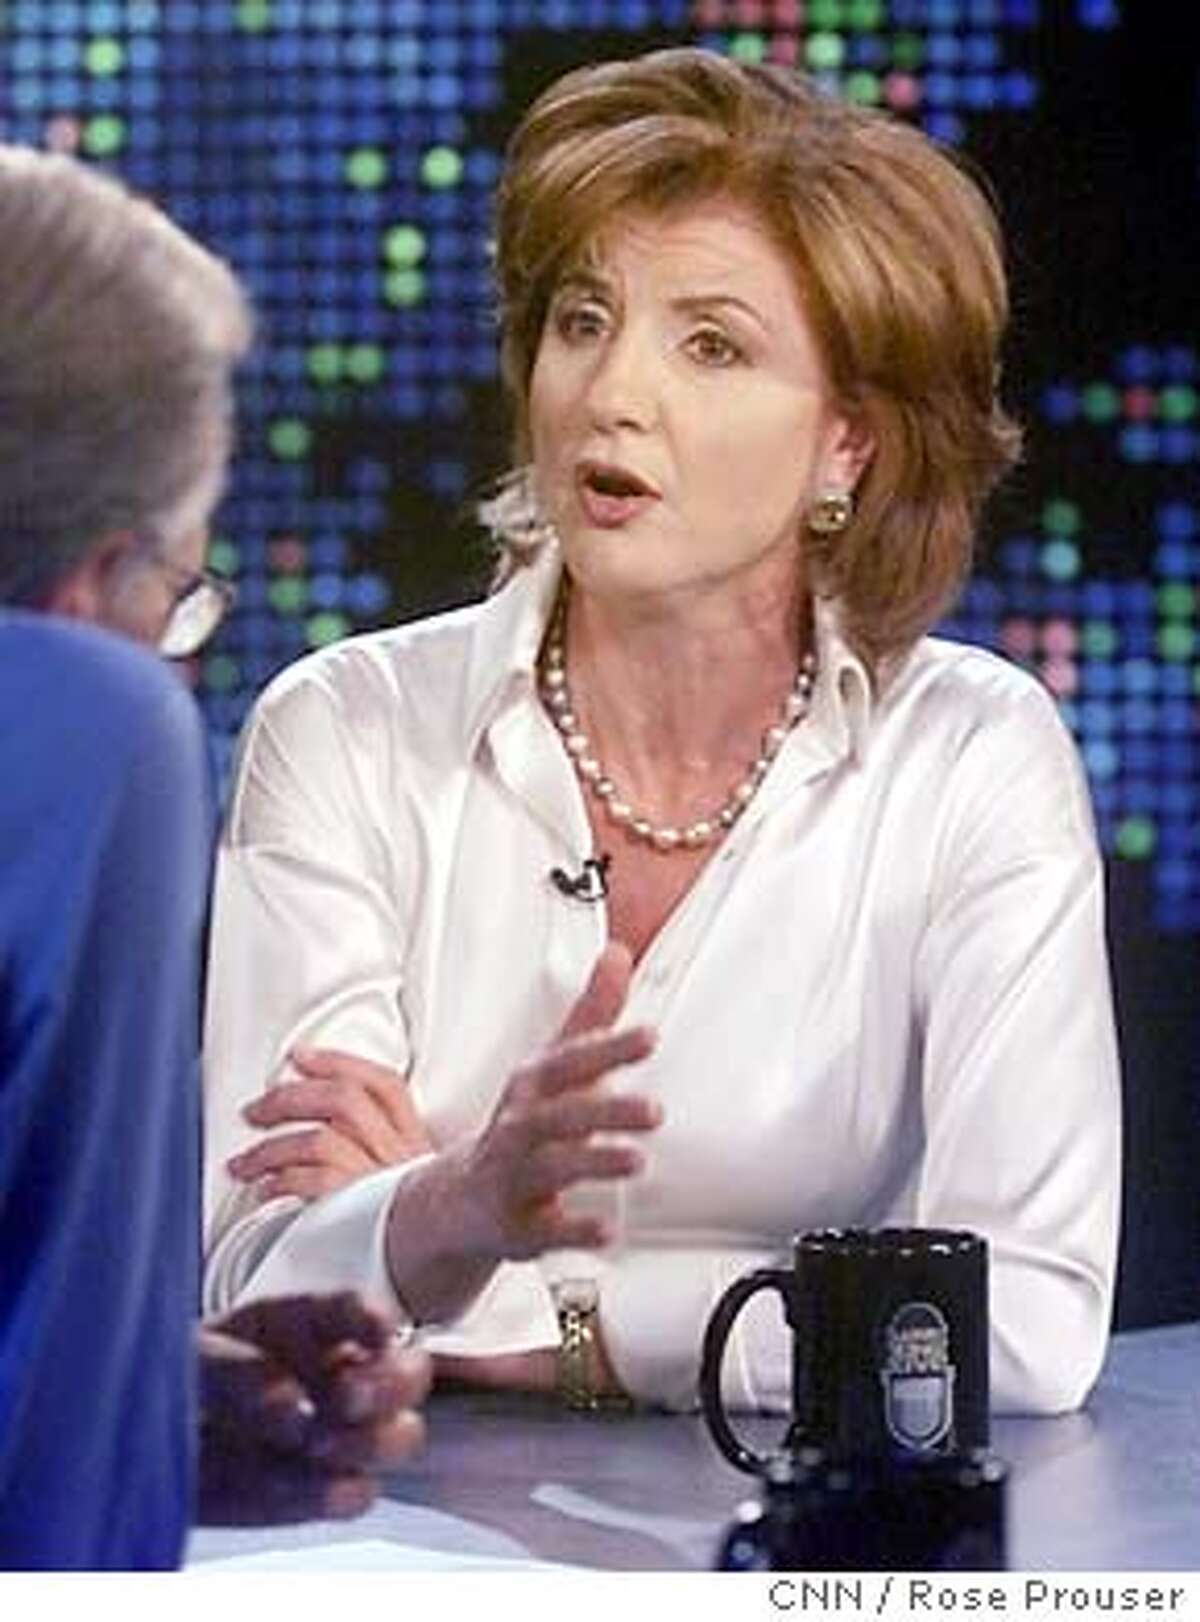 Arianna Huffington, Independent California gubernatorial recall candidate, announces she has decided to withdraw as a candidate so she can devote all her time and energy in the remaining week to defeating the recall, and to defeating Arnold Schwarzenegger, during an interview with talk show host Larry King (L) on the CNN program